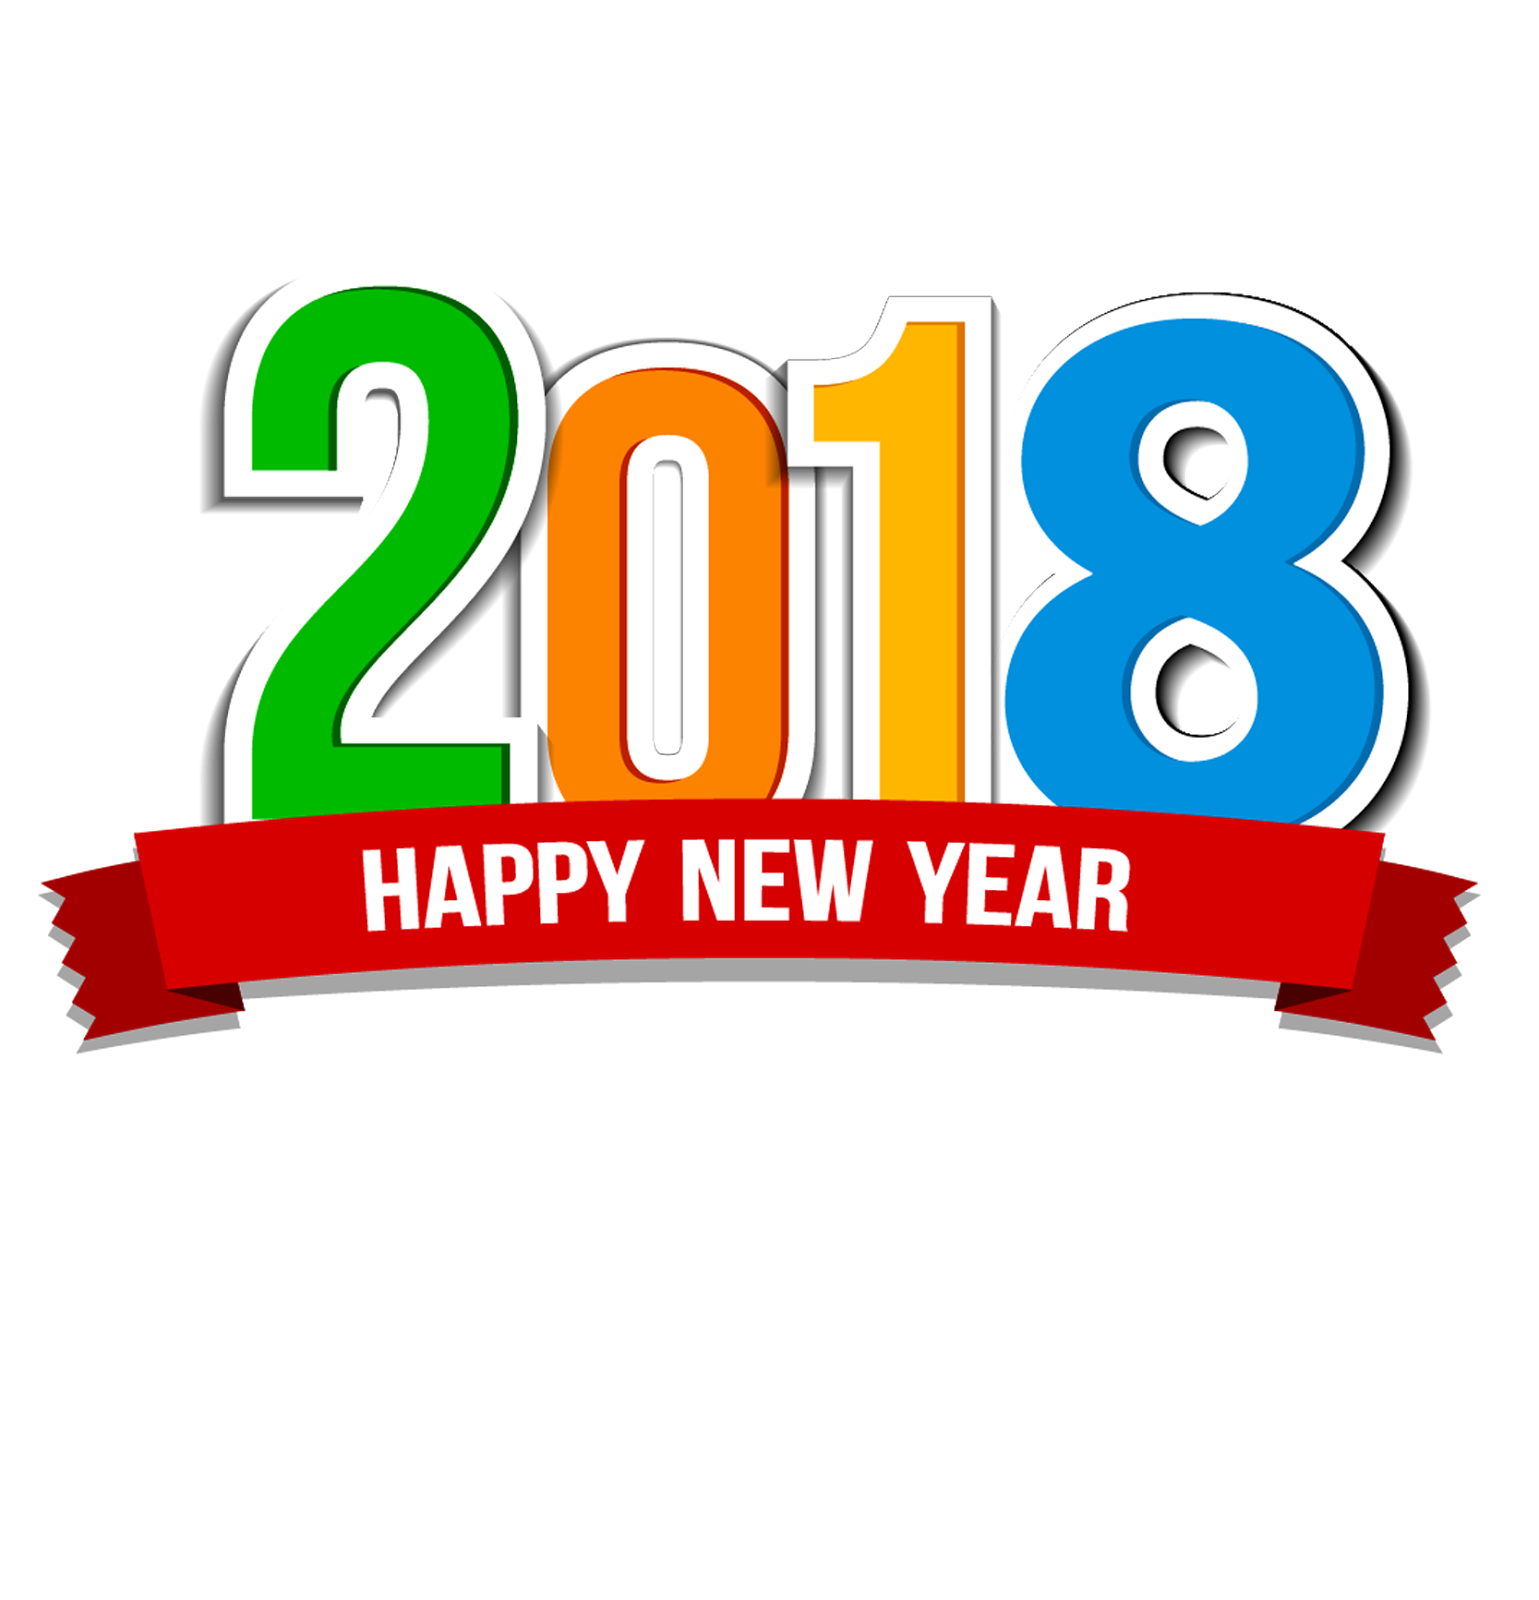 Happy New Year Png Images 97